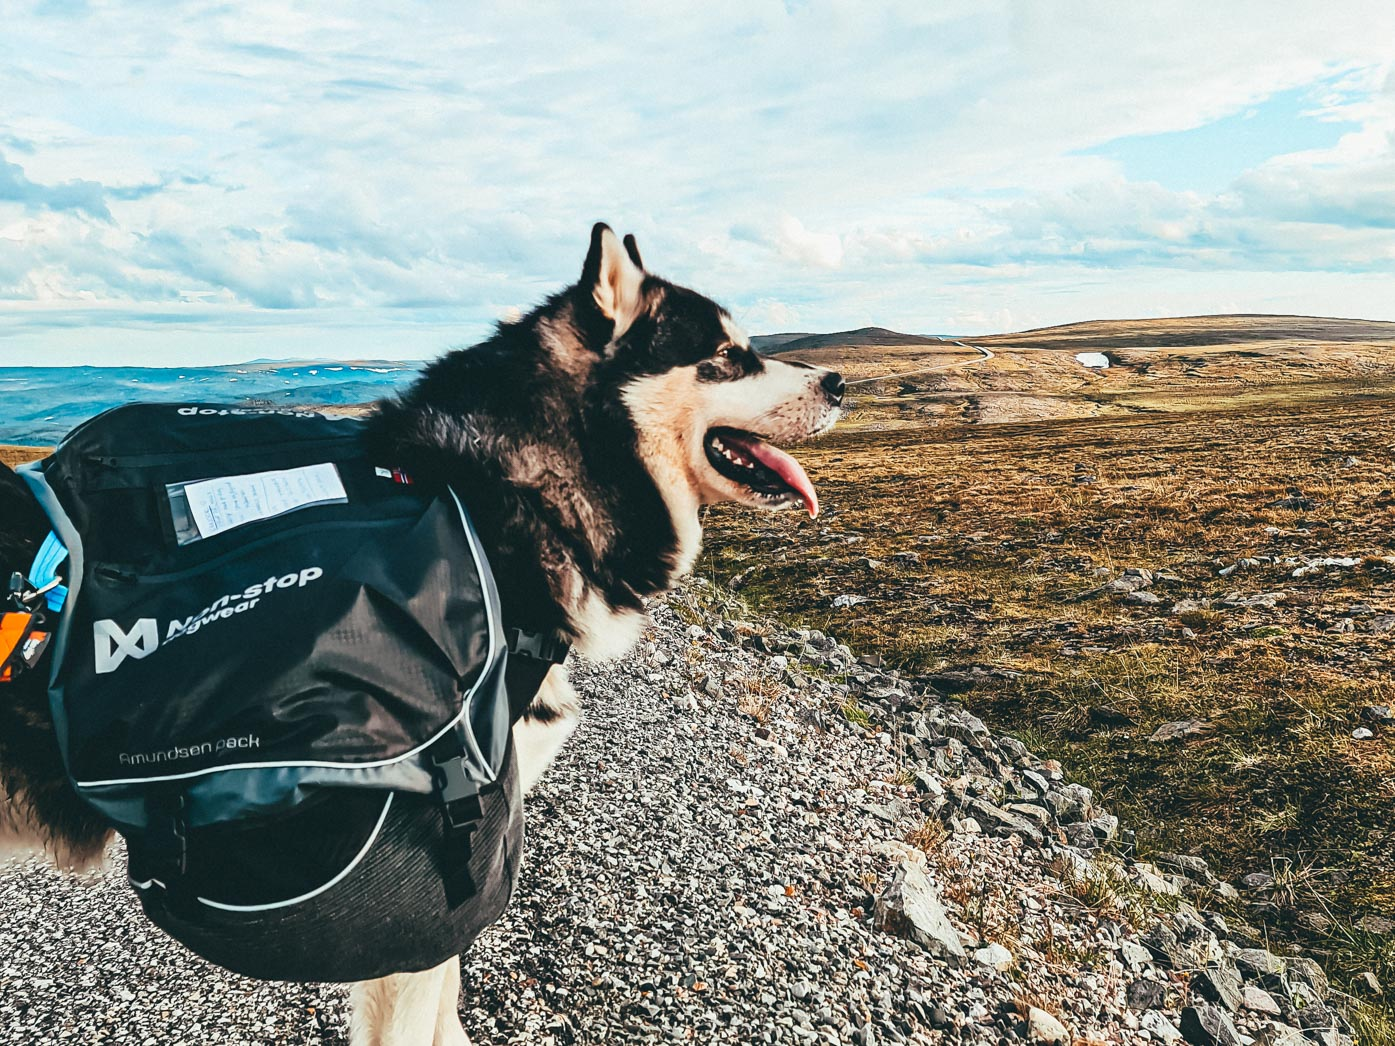 Nanook backpack norge på langs